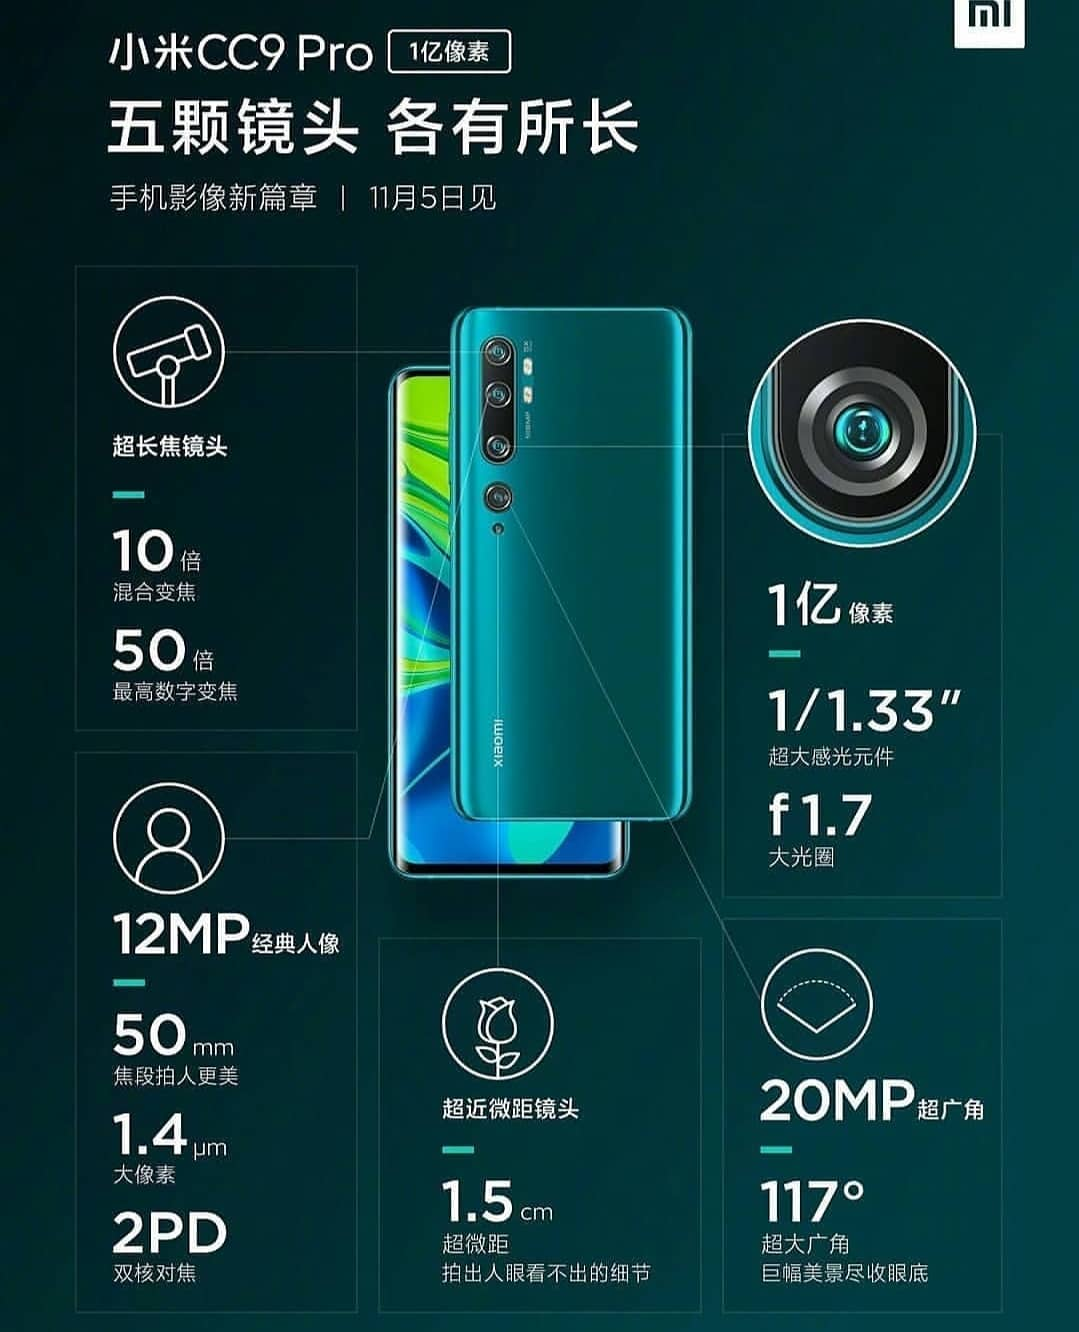 Xiaomi Mi CC9 Pro smartphone with 108MP Penta-Camera, 5260mAh battery launched